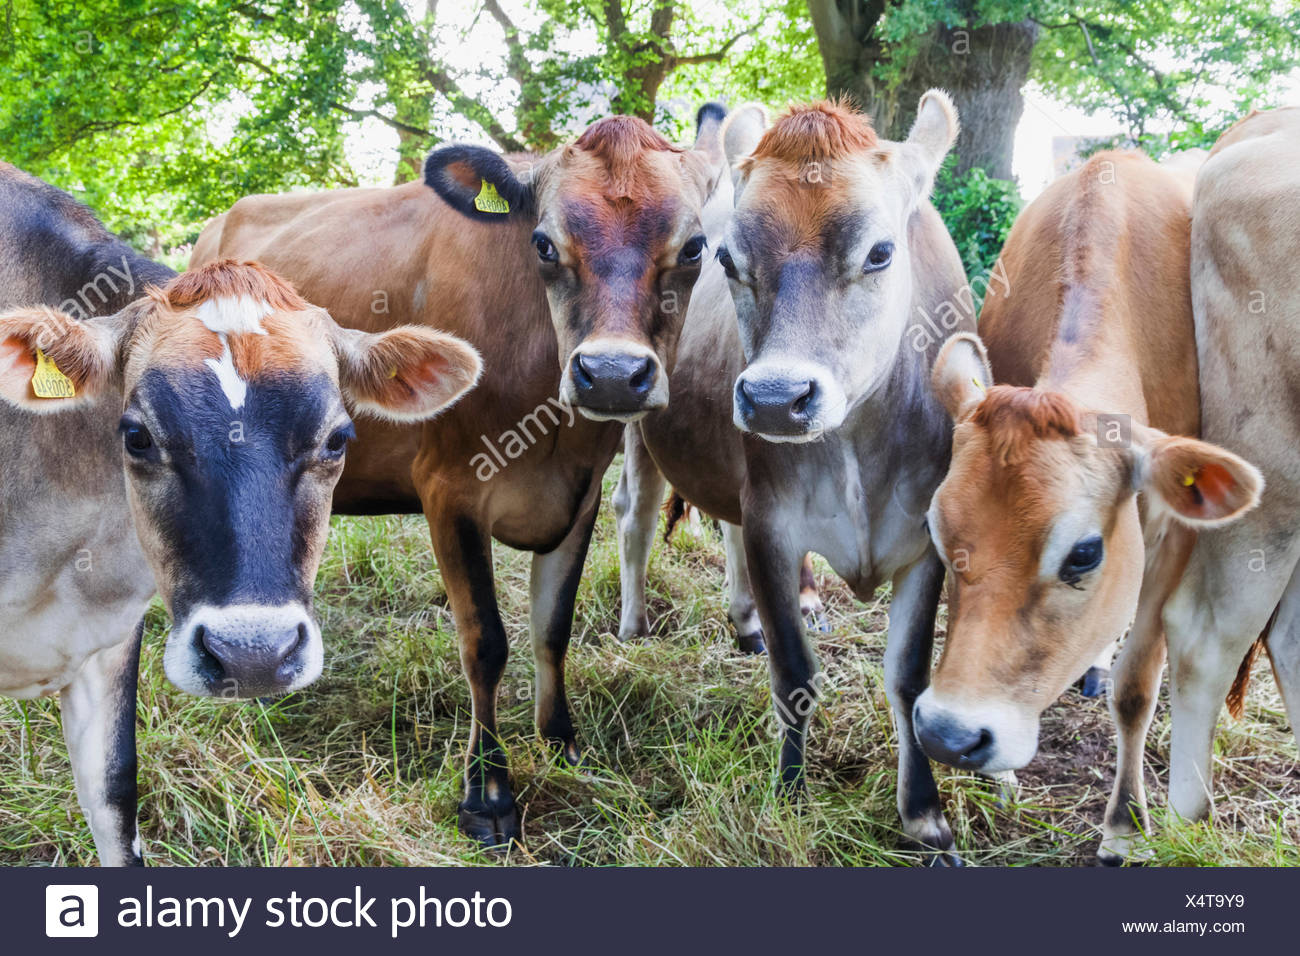 Royaume-uni, Iles Anglo-Normandes, Jersey, Jersey Cows Photo Stock